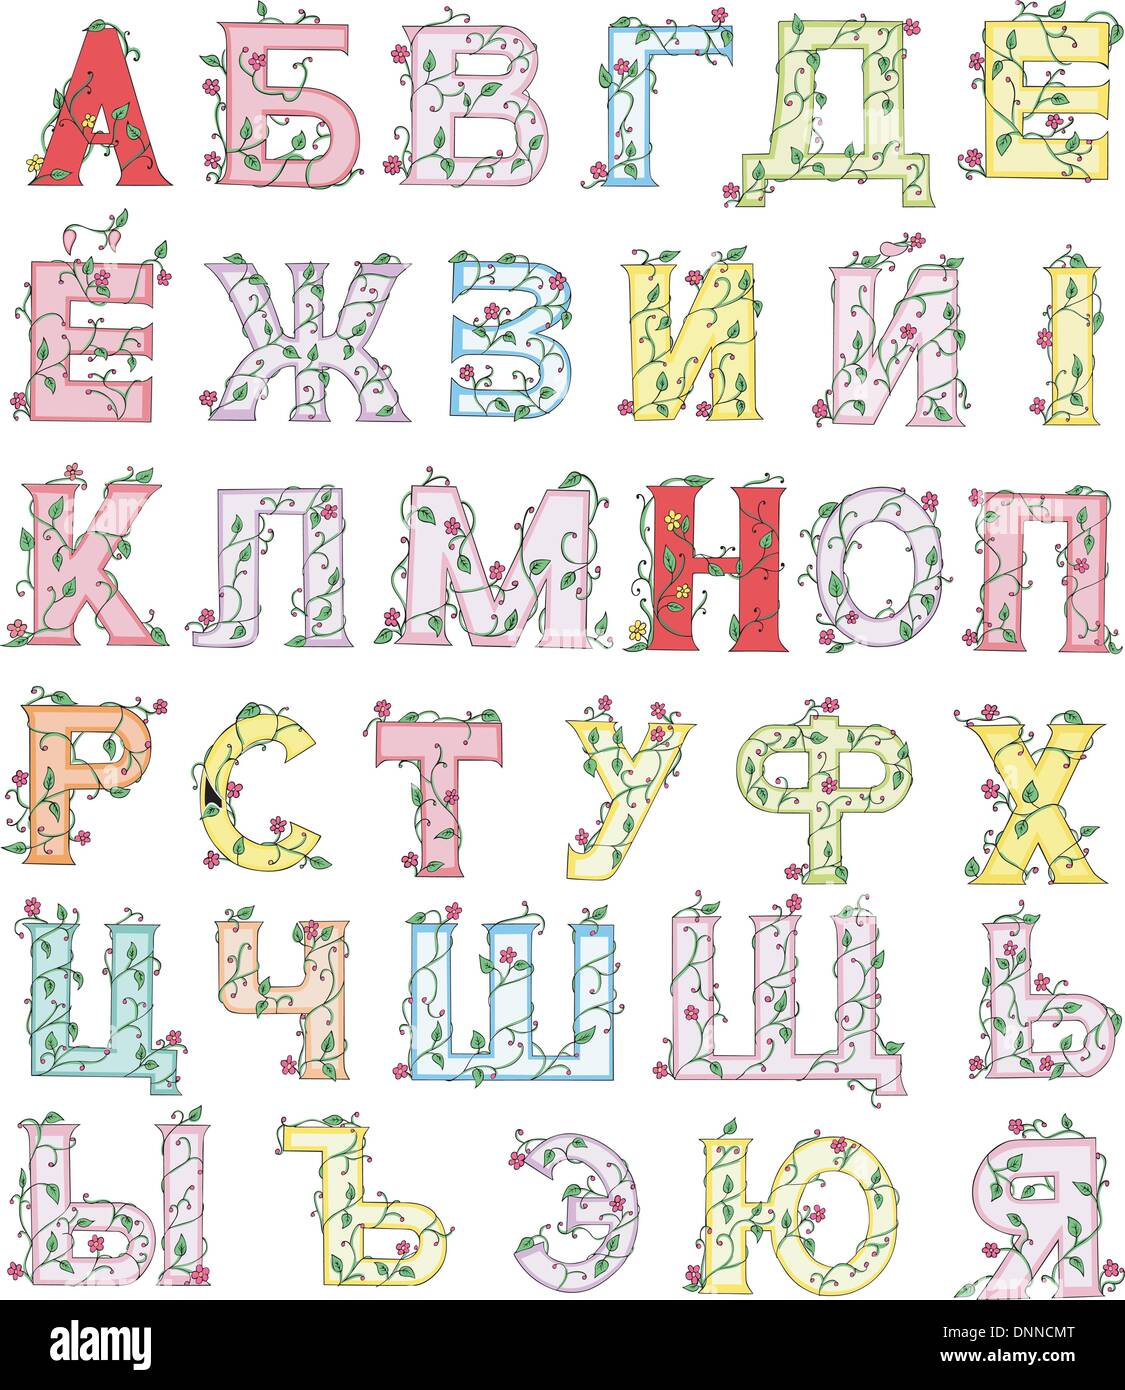 Floral Alphabet (Cyrillic / Russian). Set of colorful vector illustrations. - Stock Image